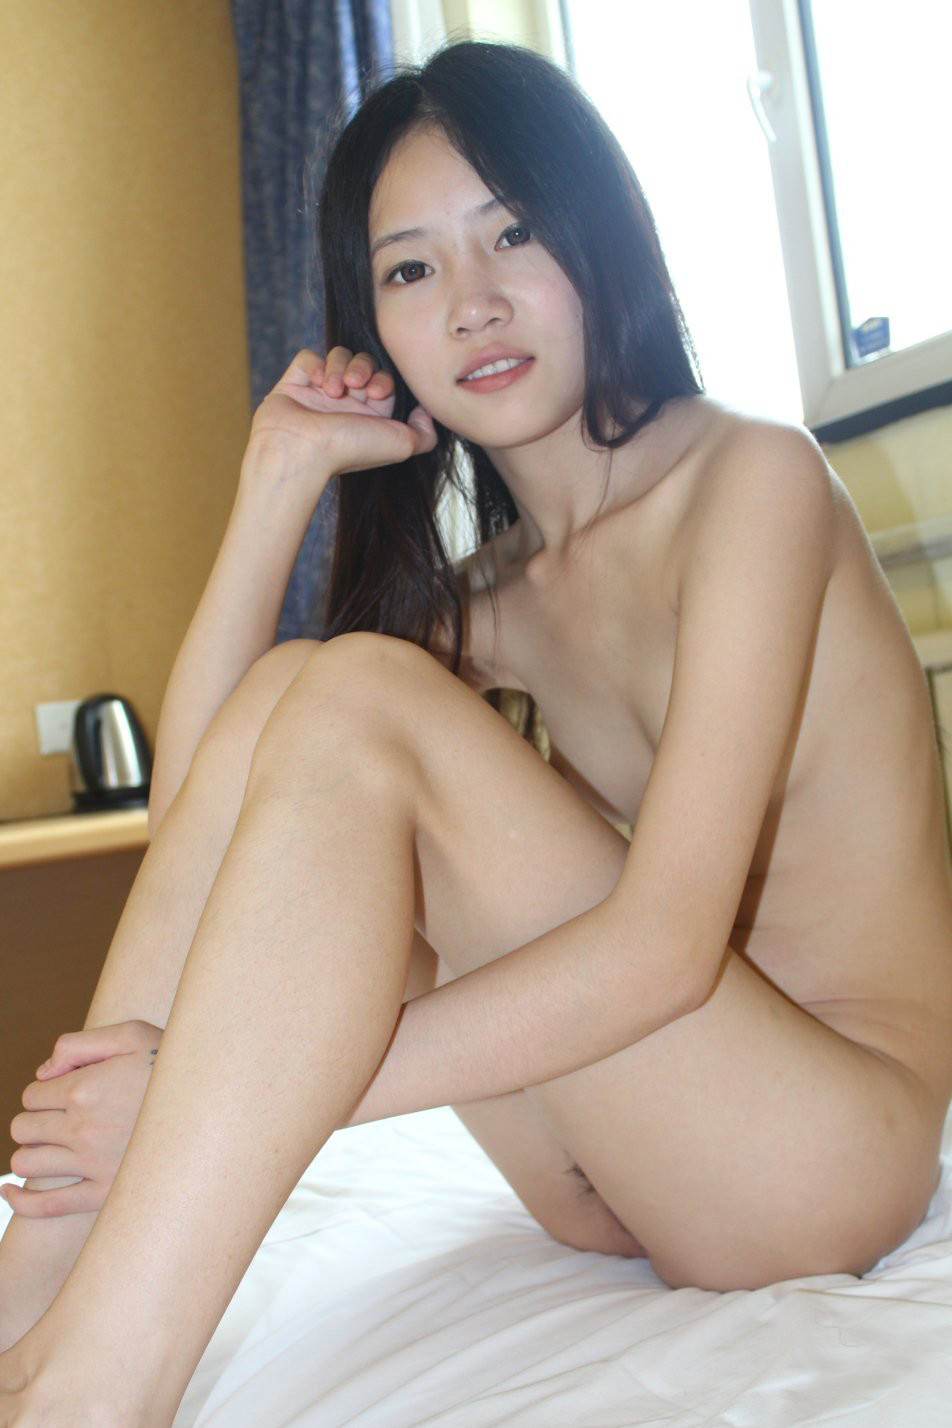 Of nude hardly girls fucked Snaps chinese